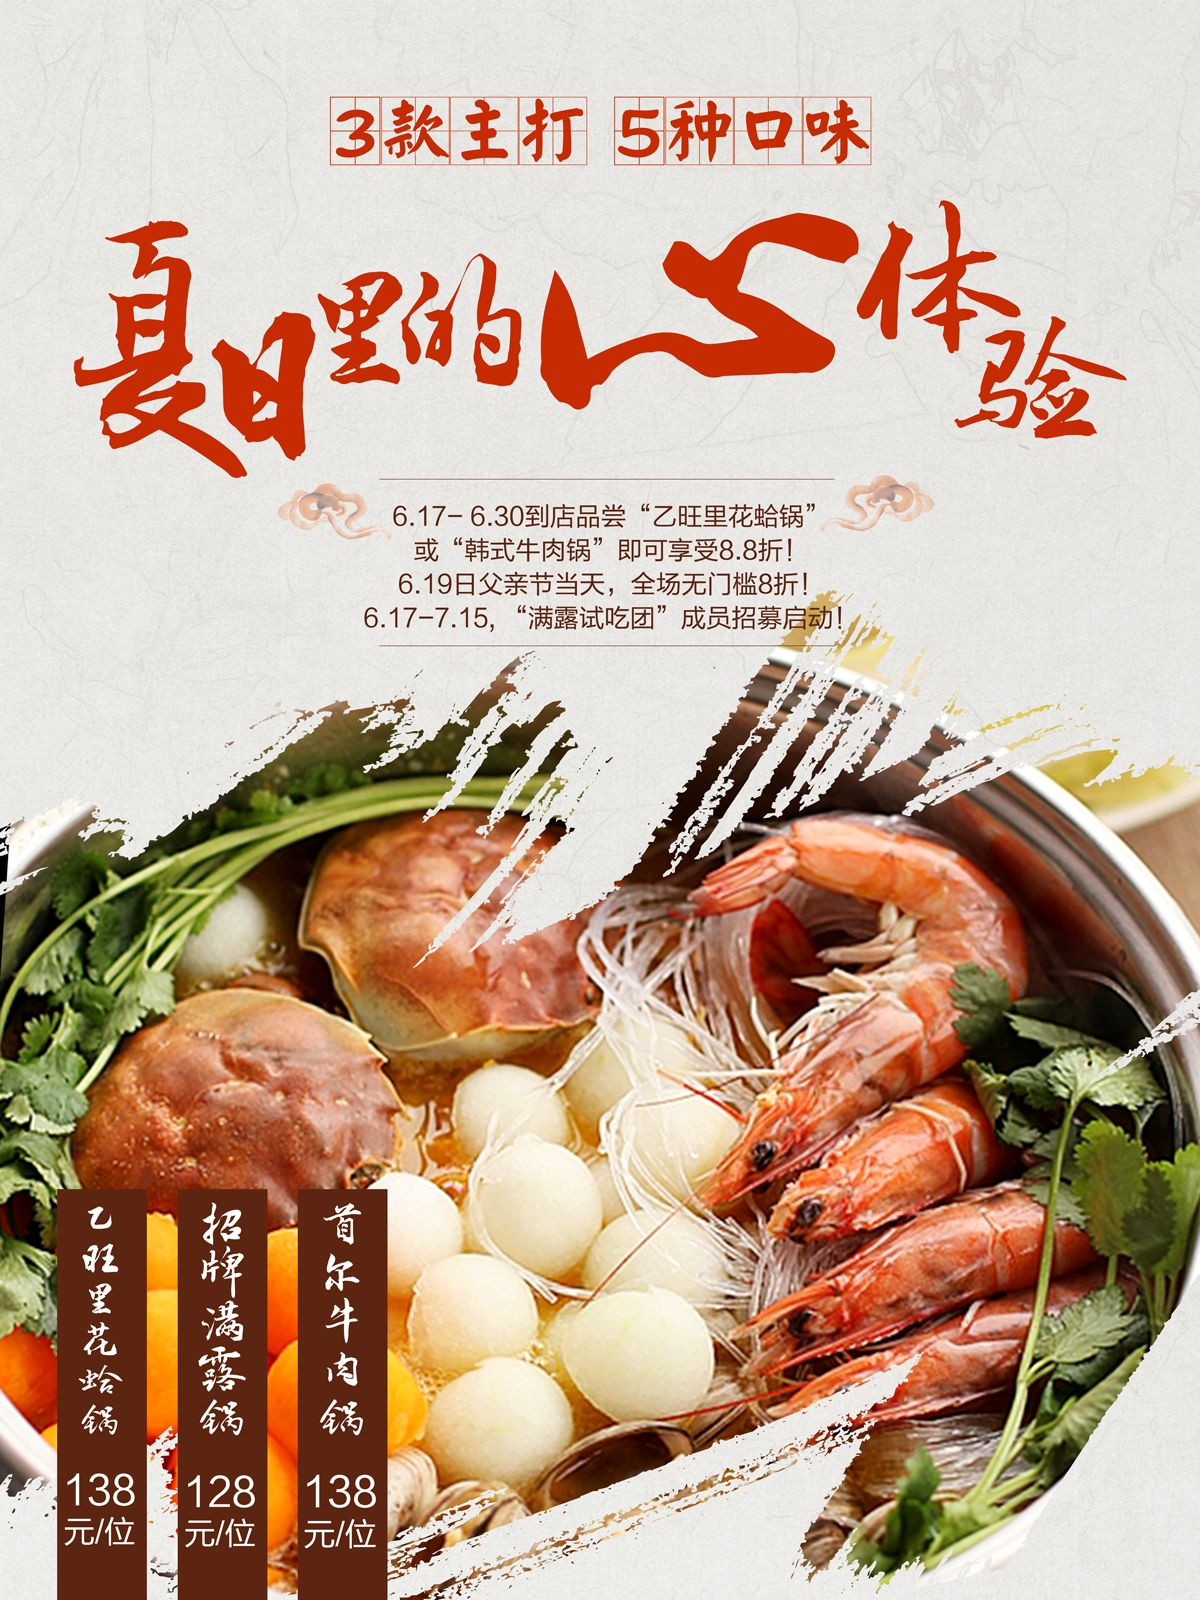 Poster Cuisine Chinese Hot Pot Food Poster Design China Psd File Free Download